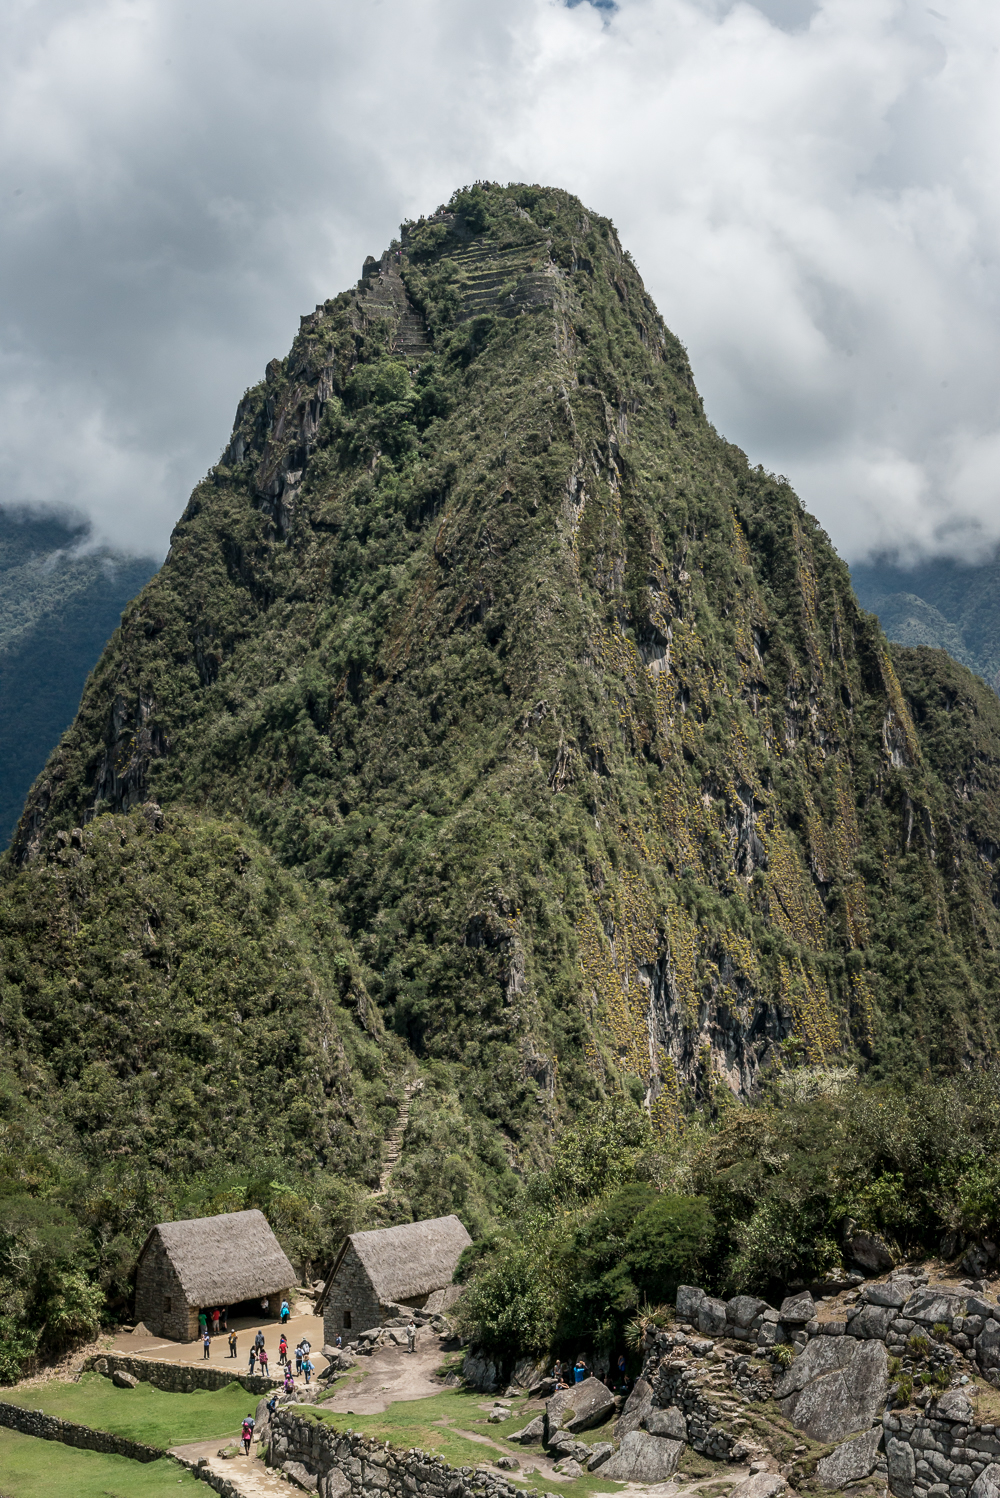 A closer view of Hayna Picchu. We can see the beginning of the path just behind the two huts, but then the path disappears and can only be seen again near the top.